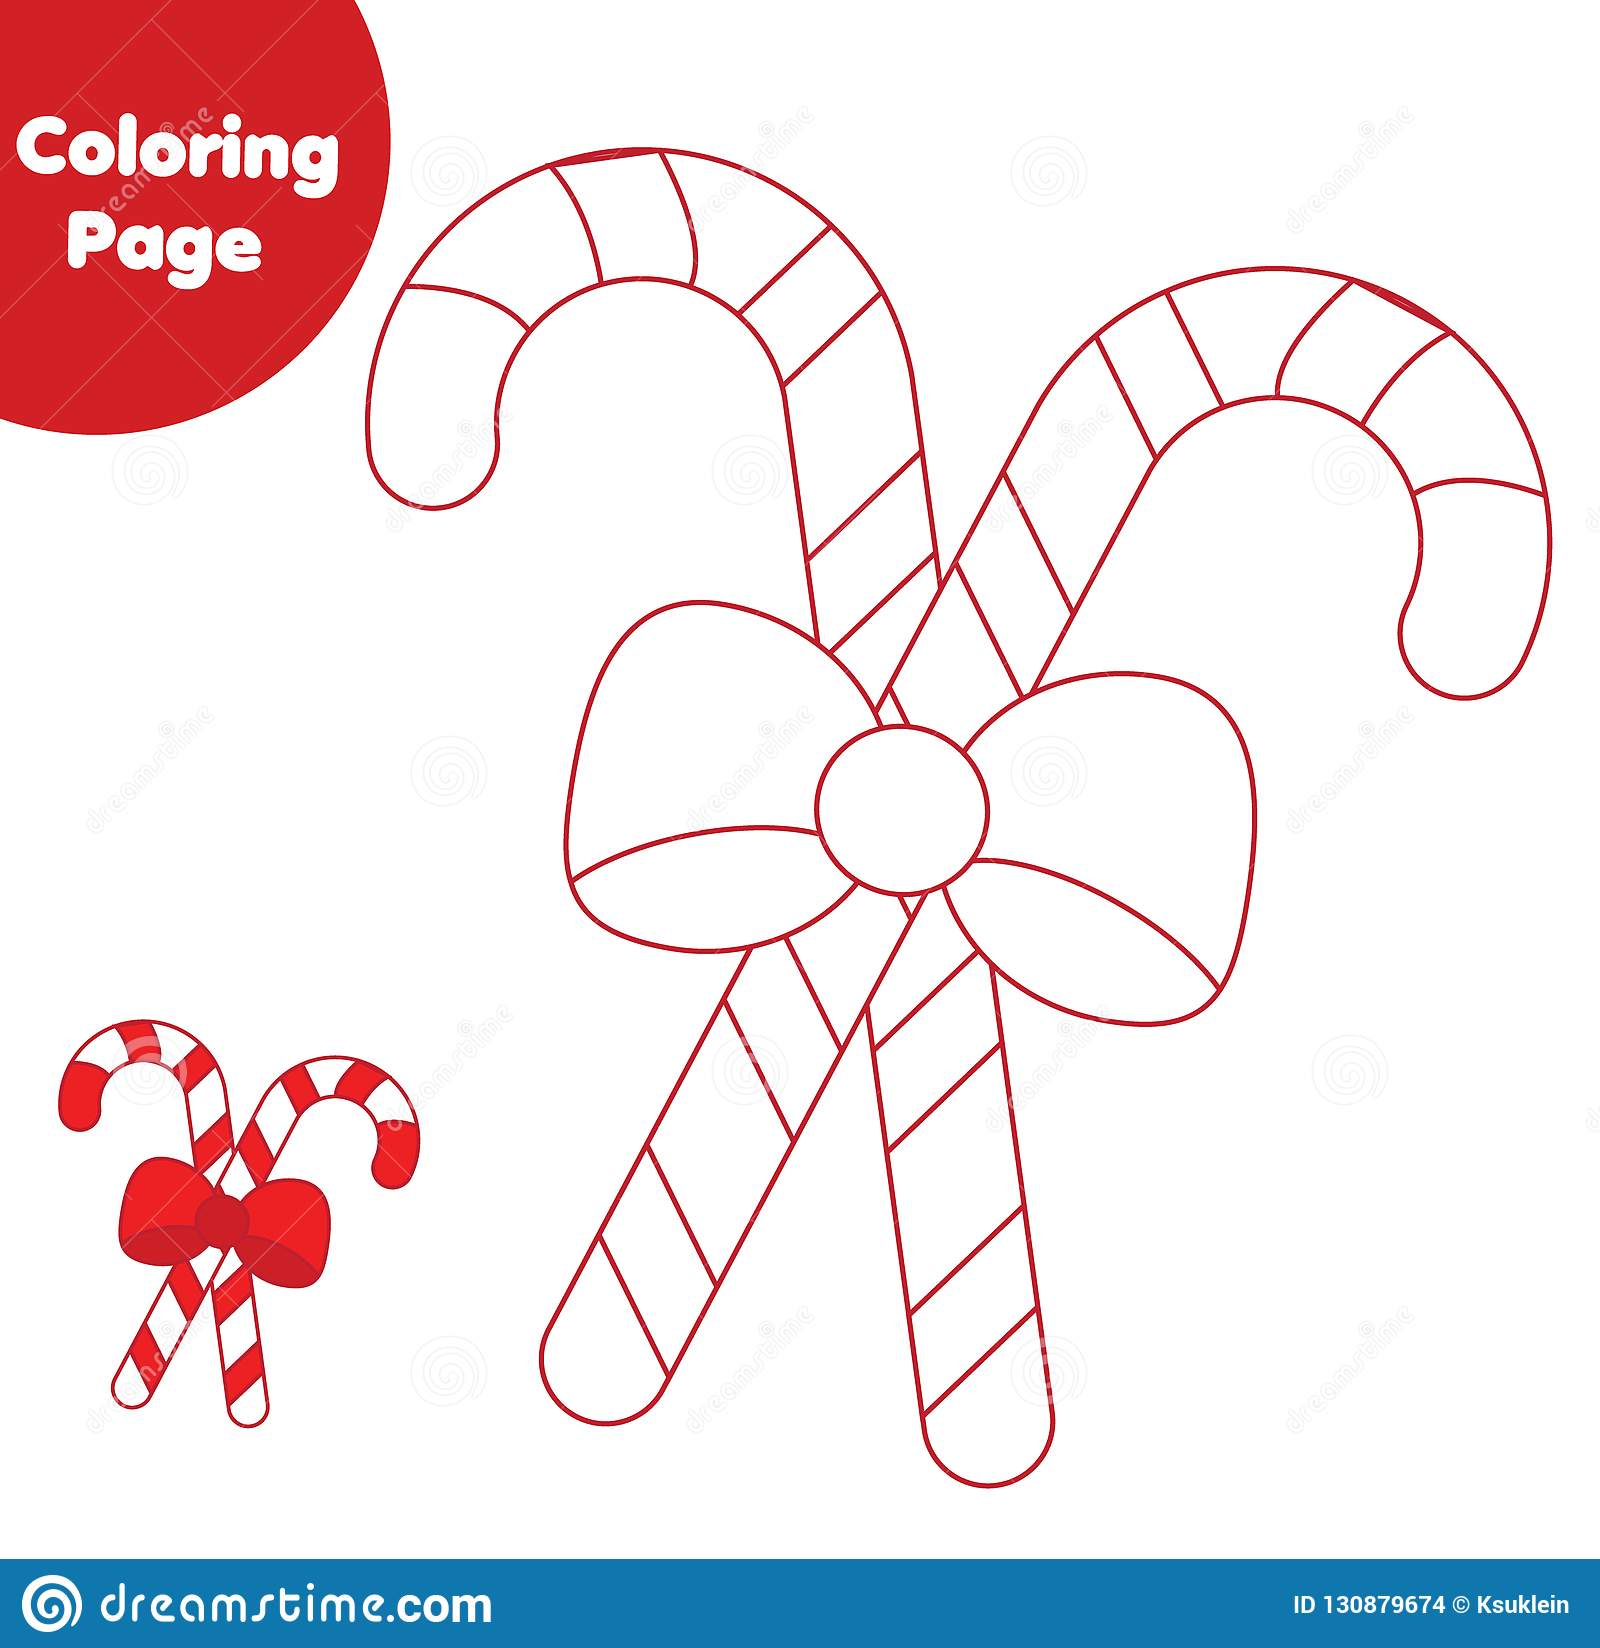 Coloring Page Educational Children Game Color Candy Canes